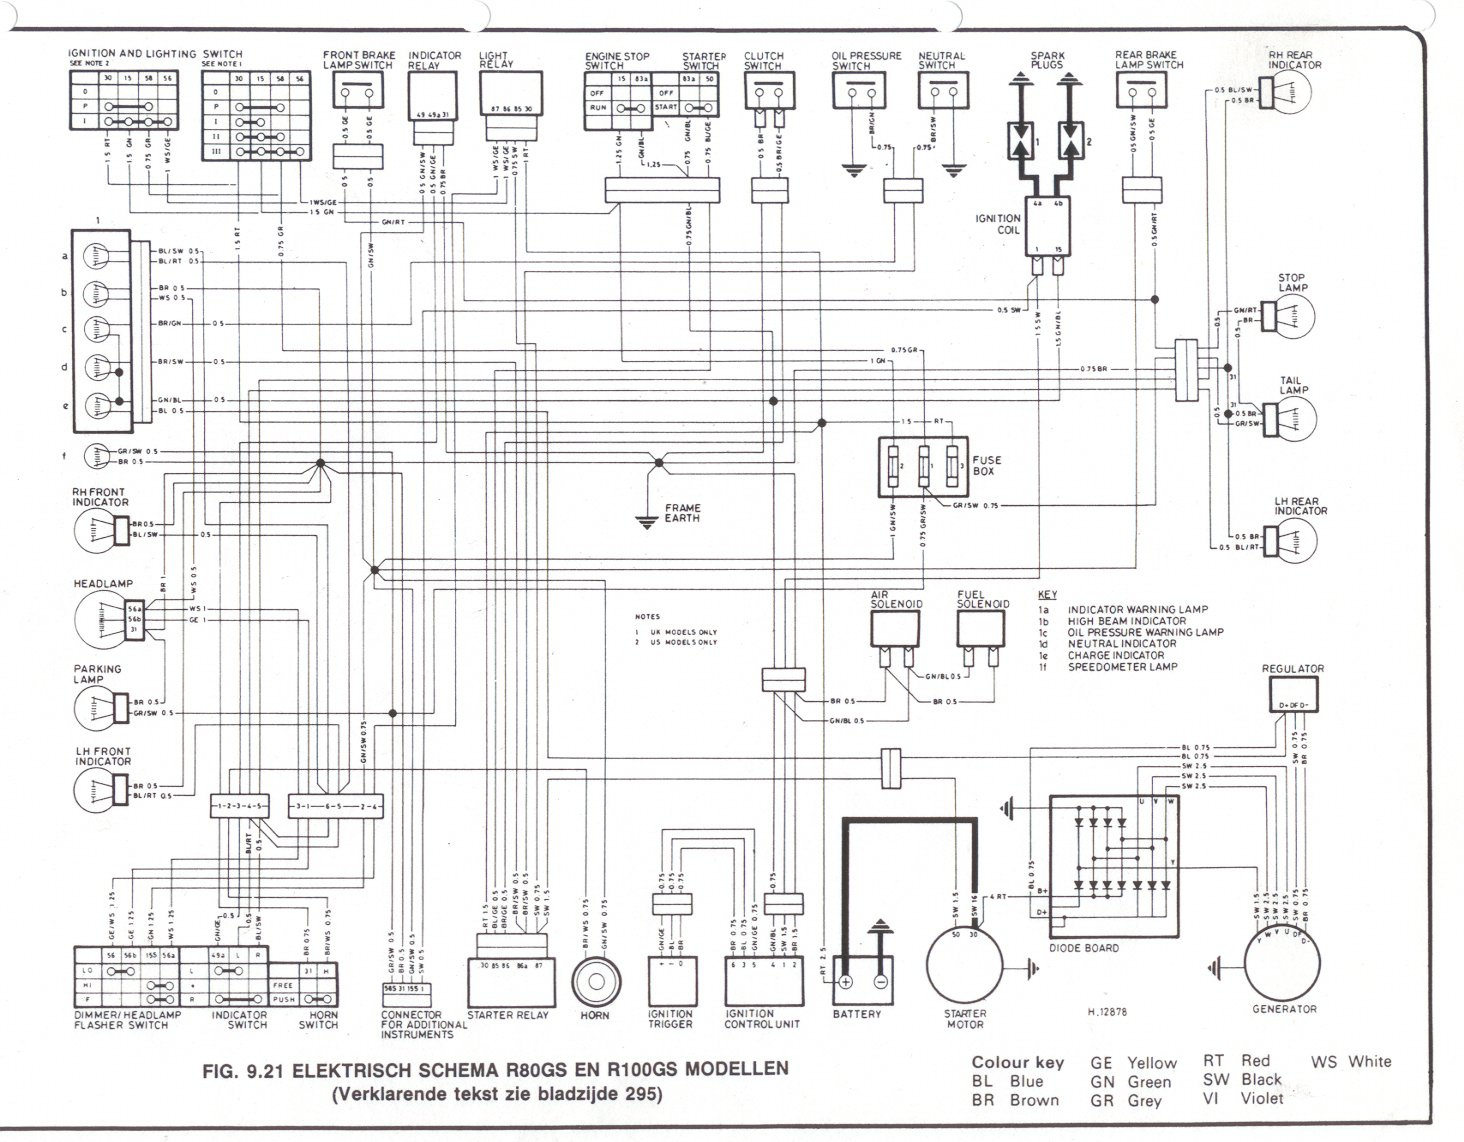 R80 100GS Schematic bmw r100 info thiel org za bmw r100rs gauge wiring diagram at pacquiaovsvargaslive.co